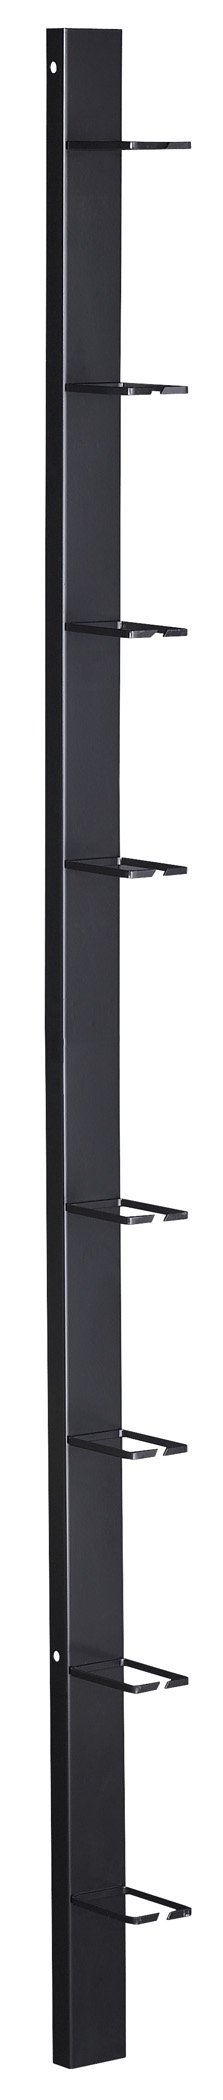 Black Box Vertical Rackmount IT Cable Manager 3''W, 48U, Double-Sided, Black